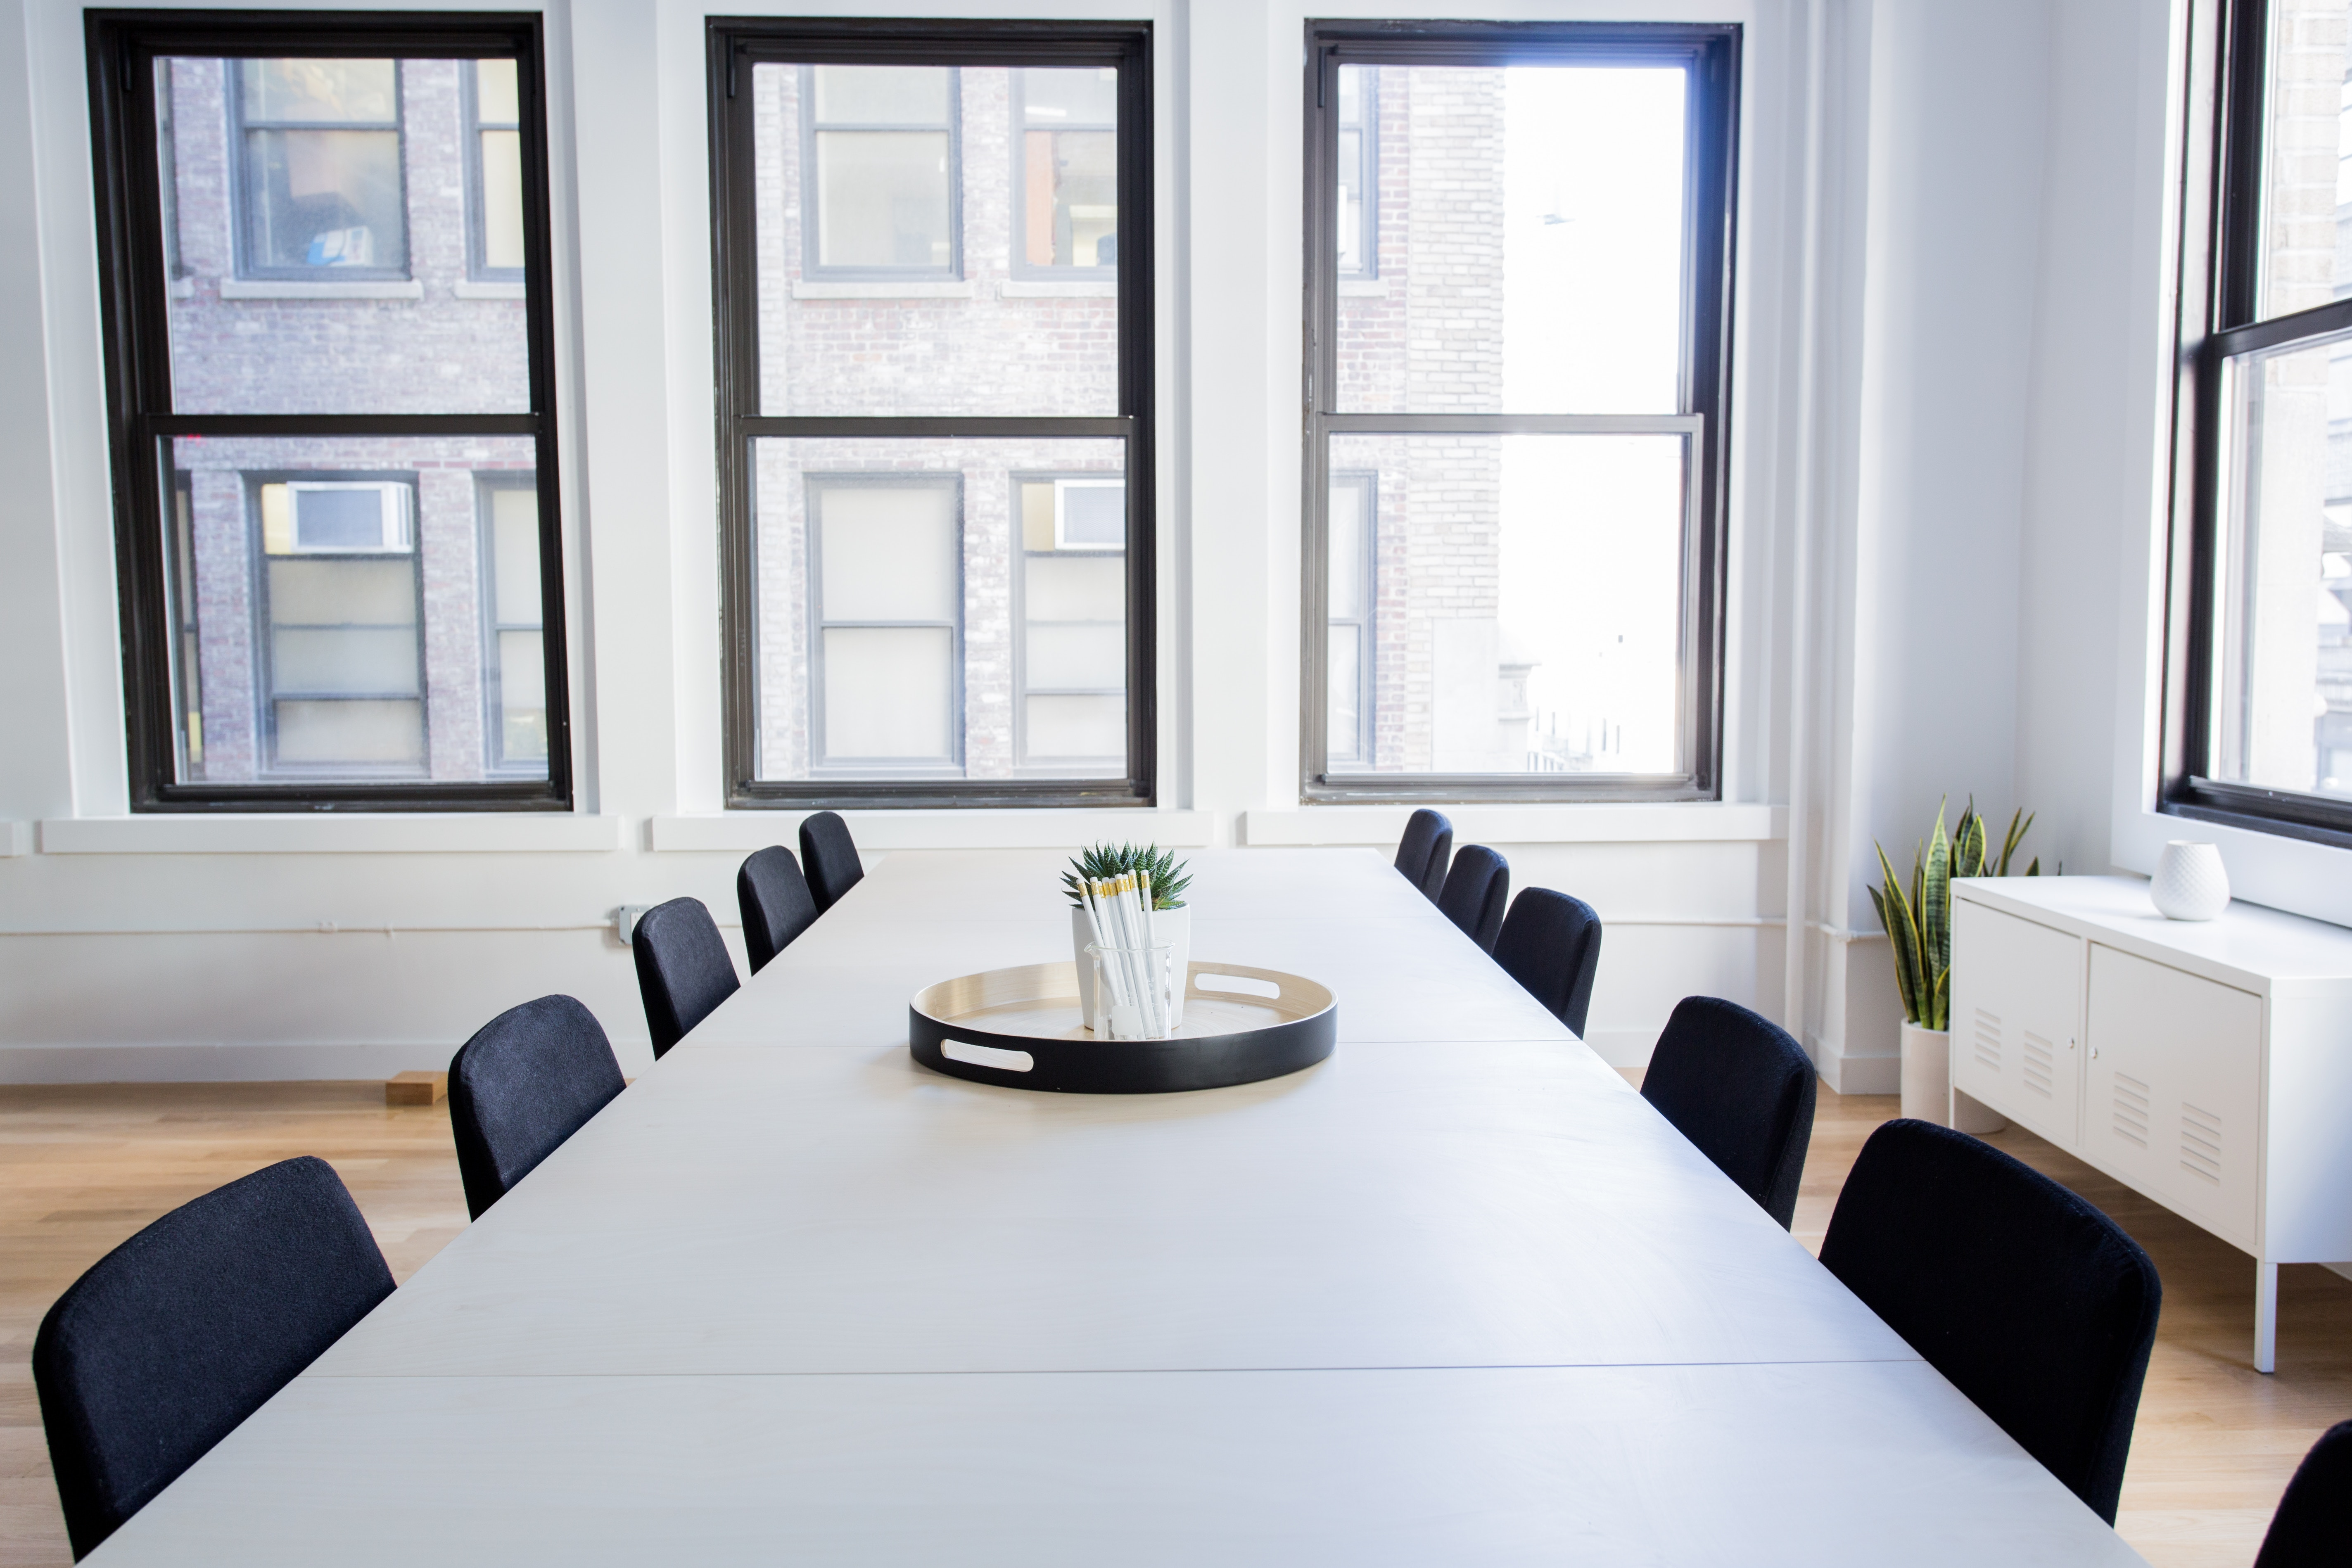 Returns need to hit the boardroom in 2018